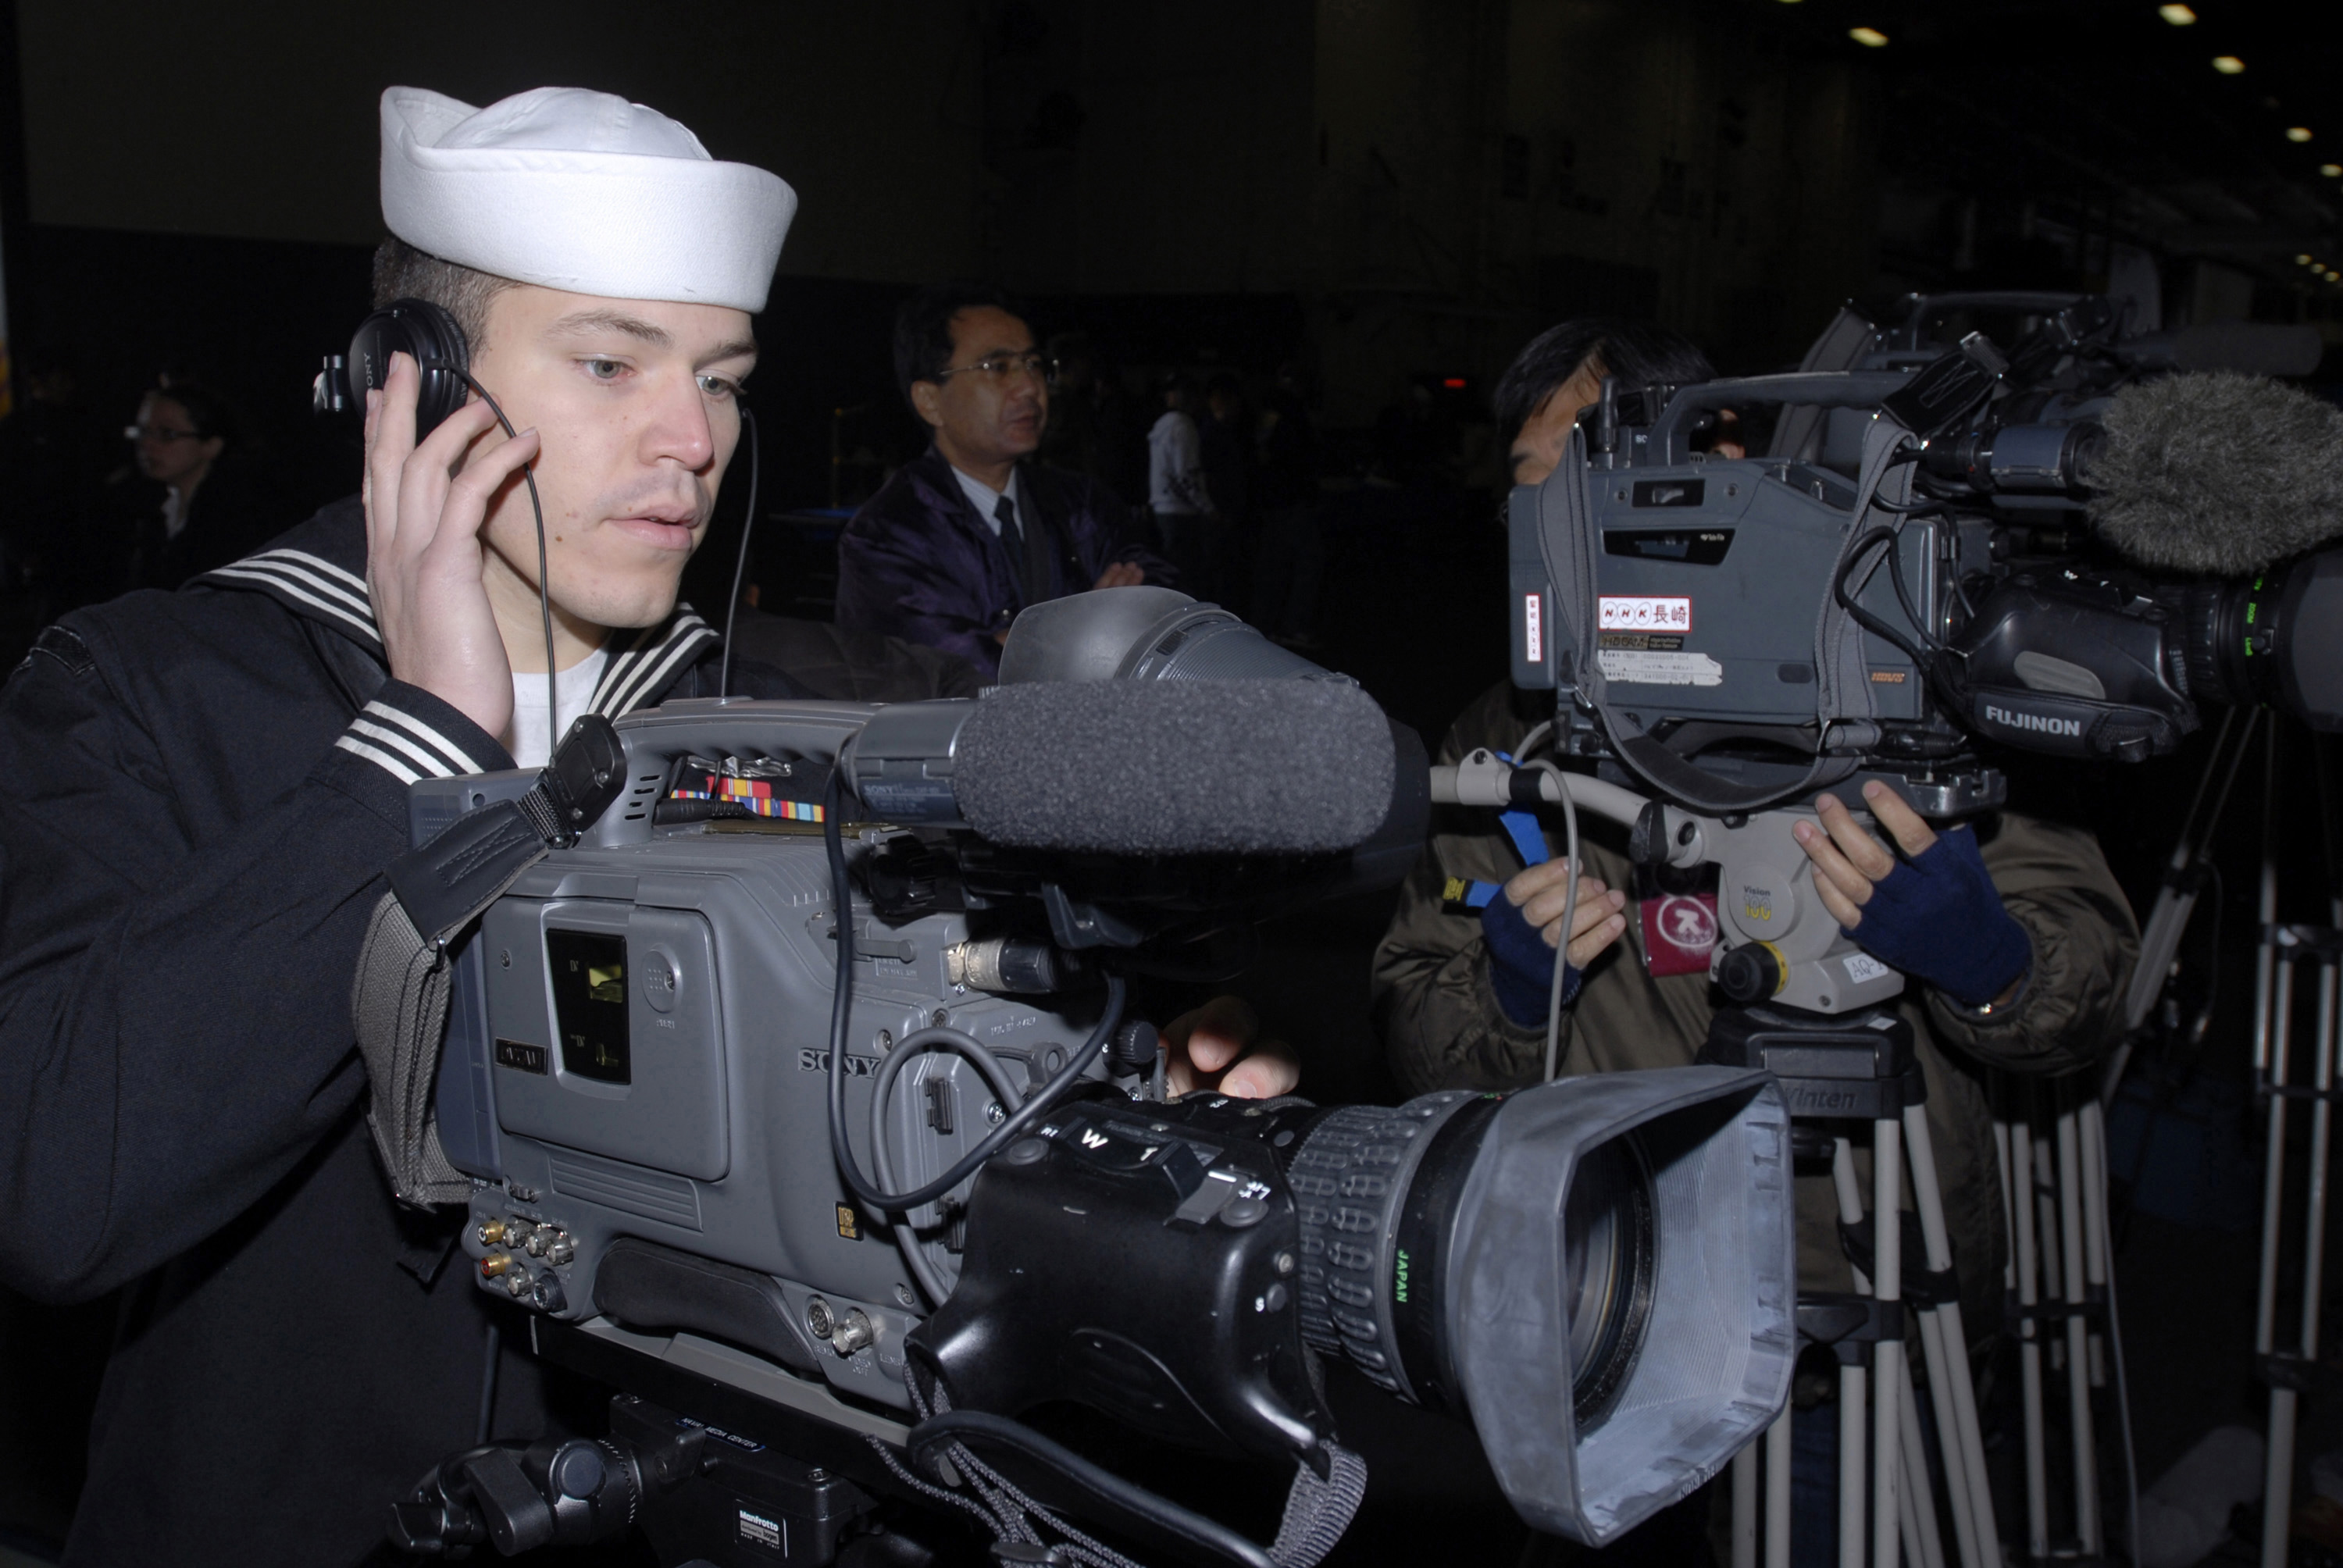 File:US Navy 080211-N-5484G-013 Mass Communication Specialist 2nd ...